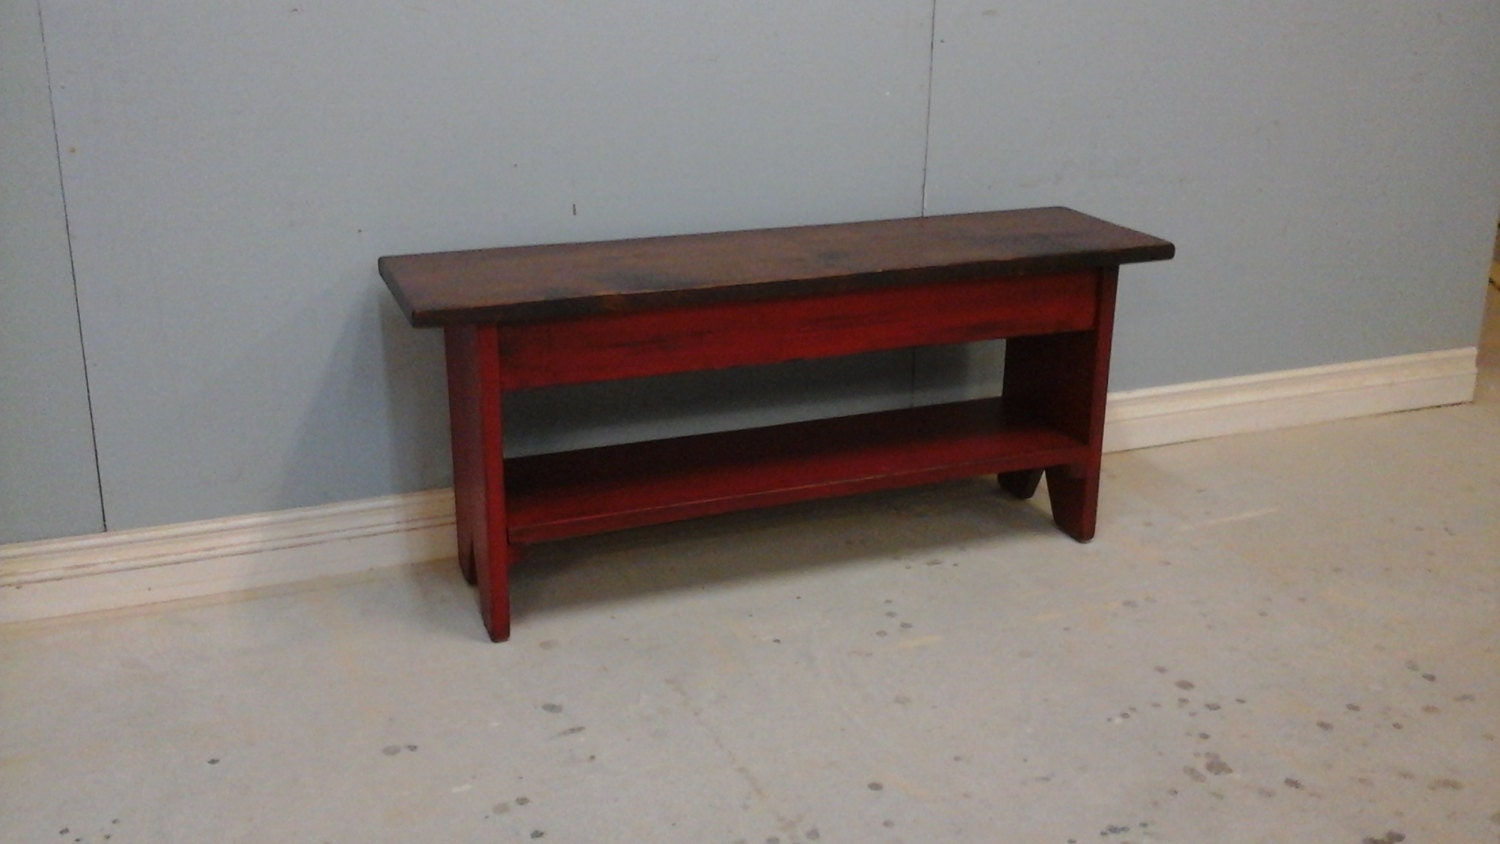 Country Bench With Shelf Entryway Bench Wooden Red Bench